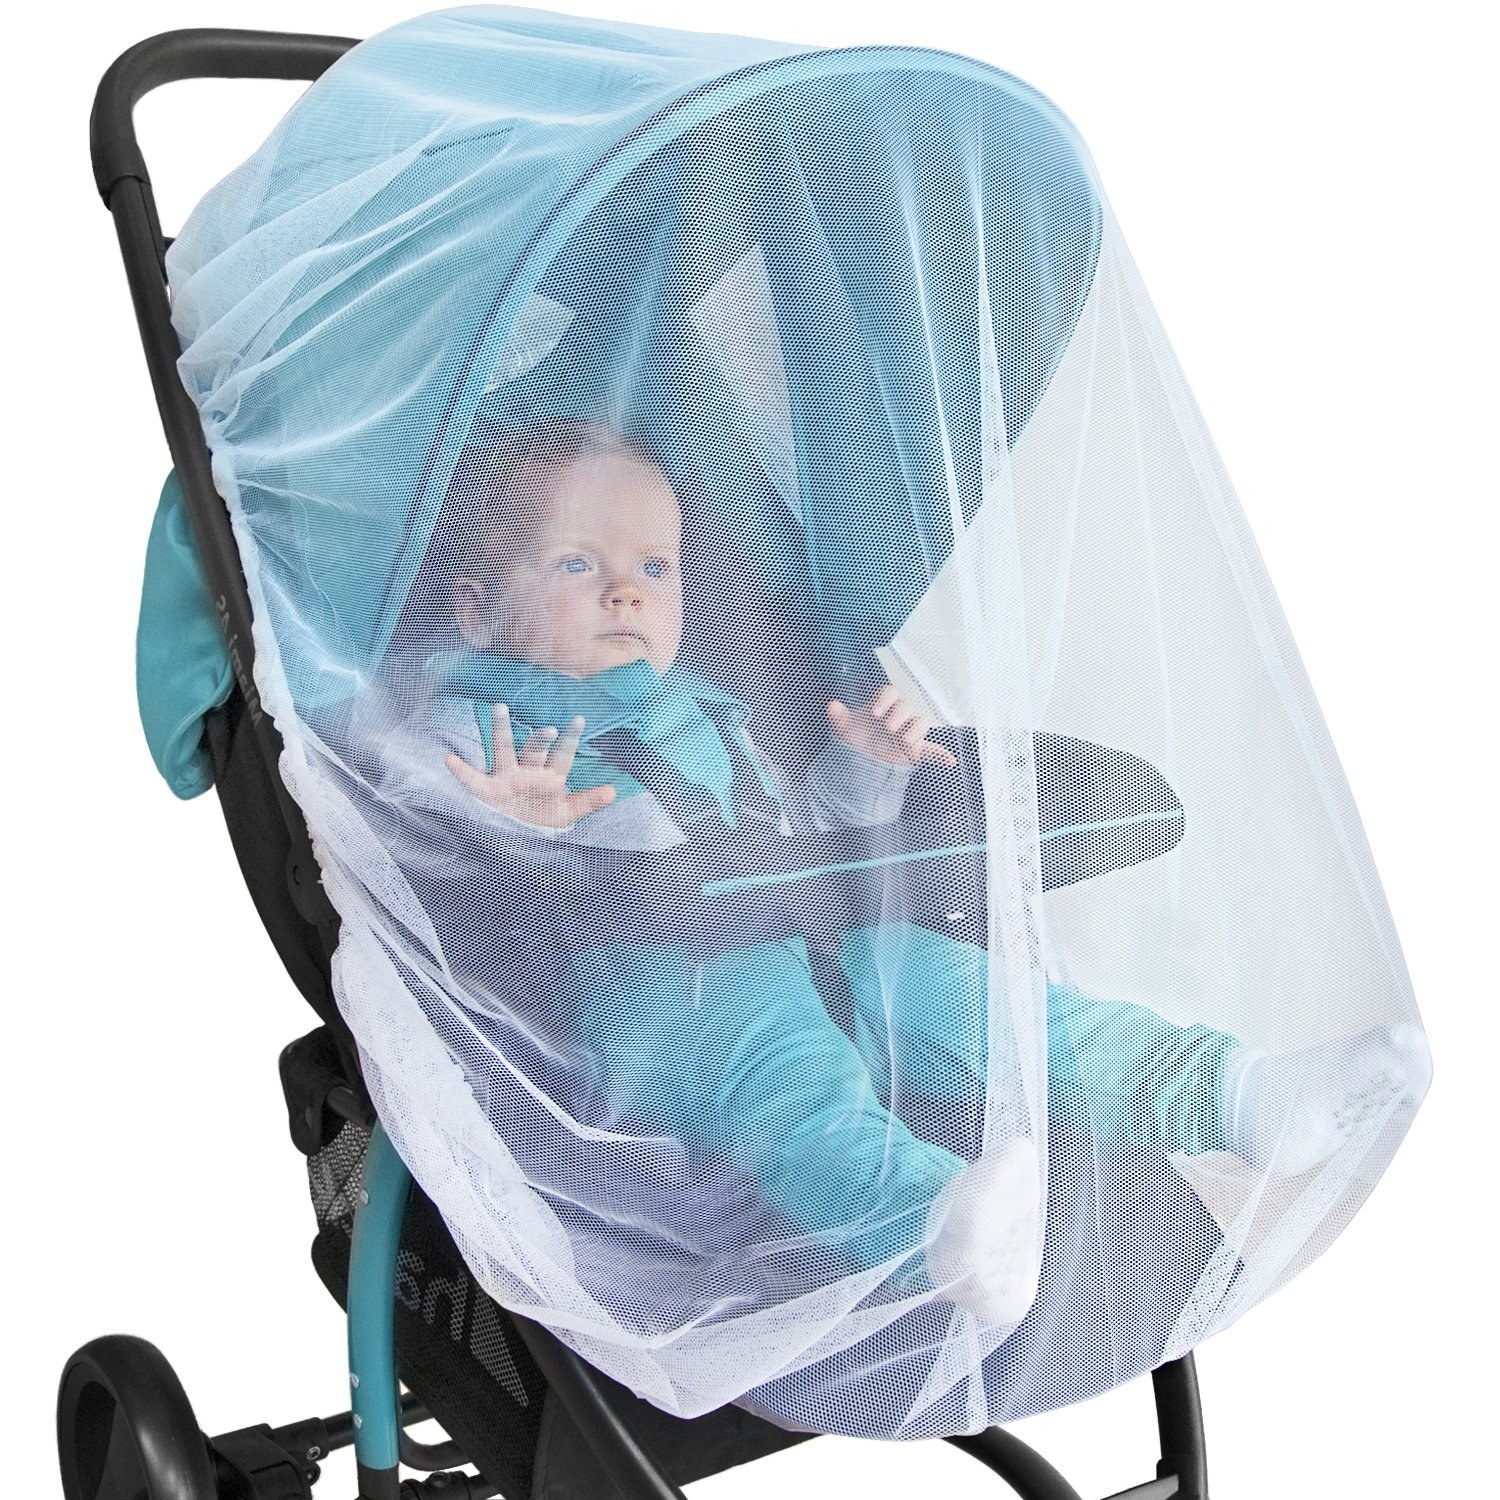 Model baby in a stroller covered with the net